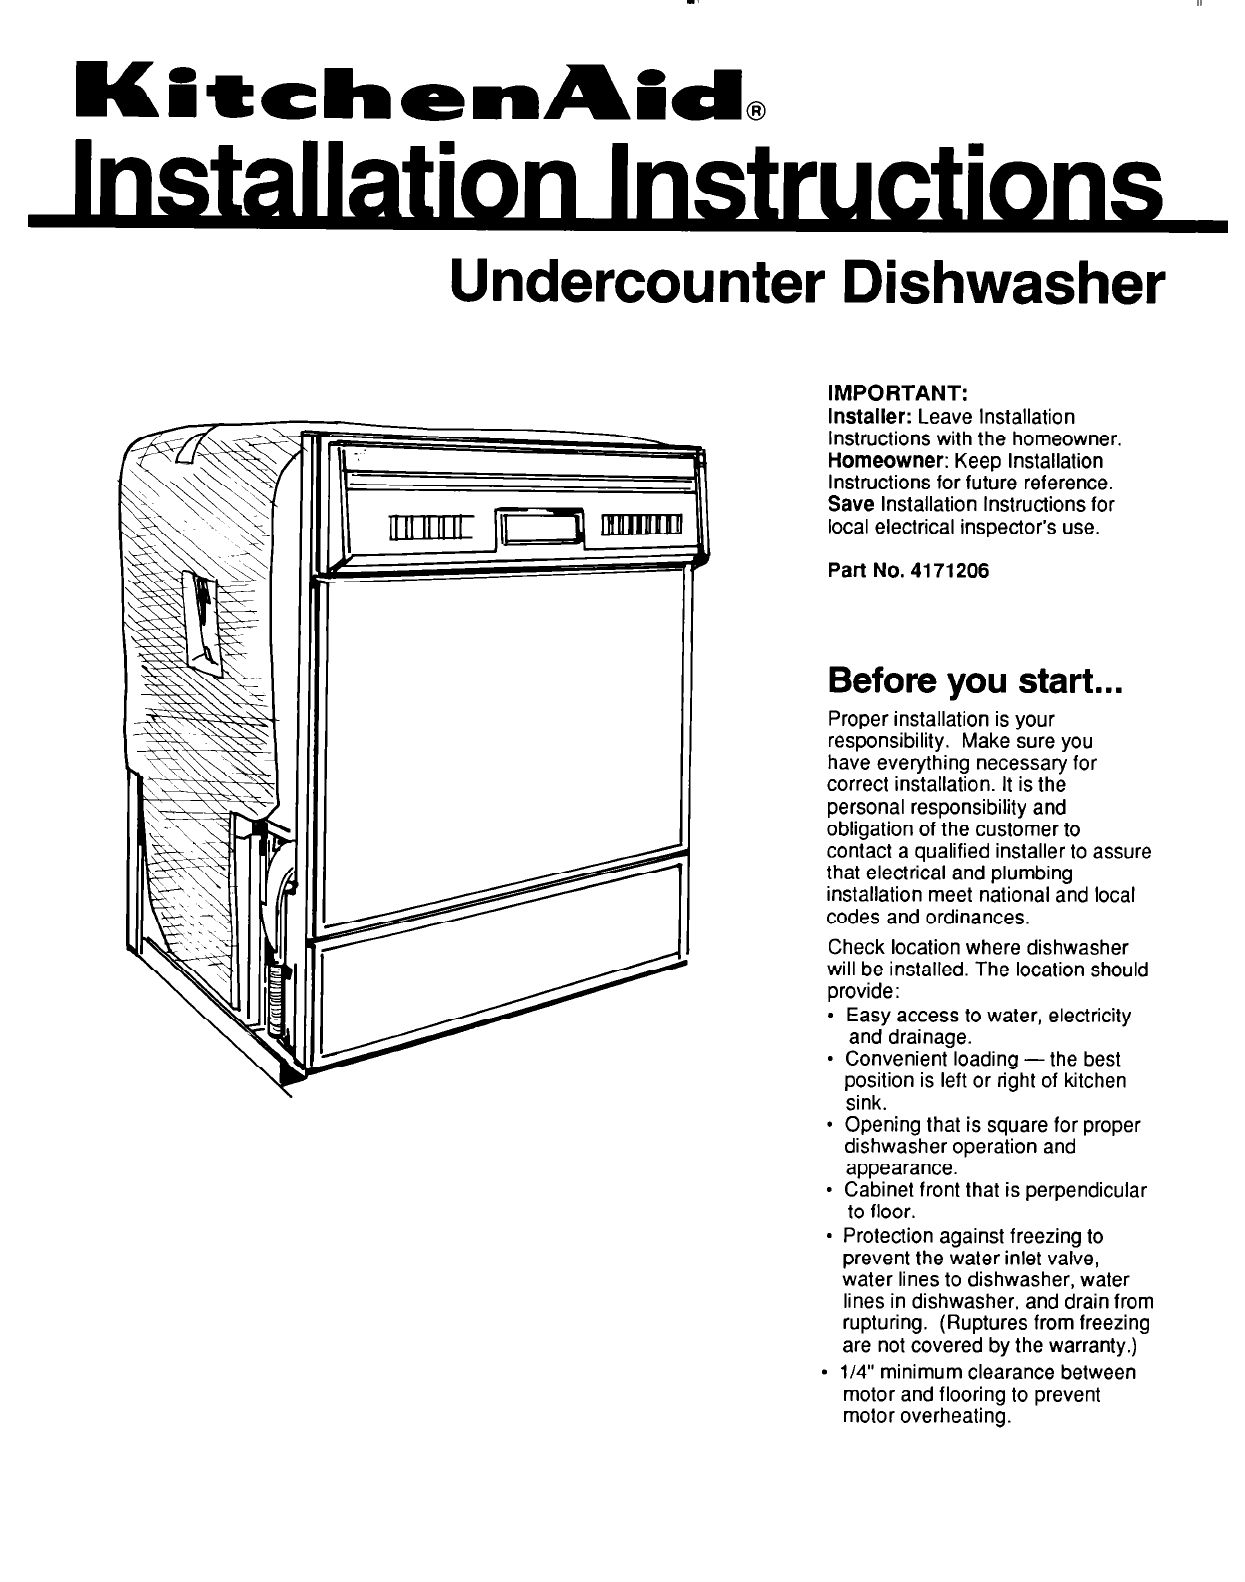 Kitchenaid Dishwasher Mounting Instructions Manual Guide